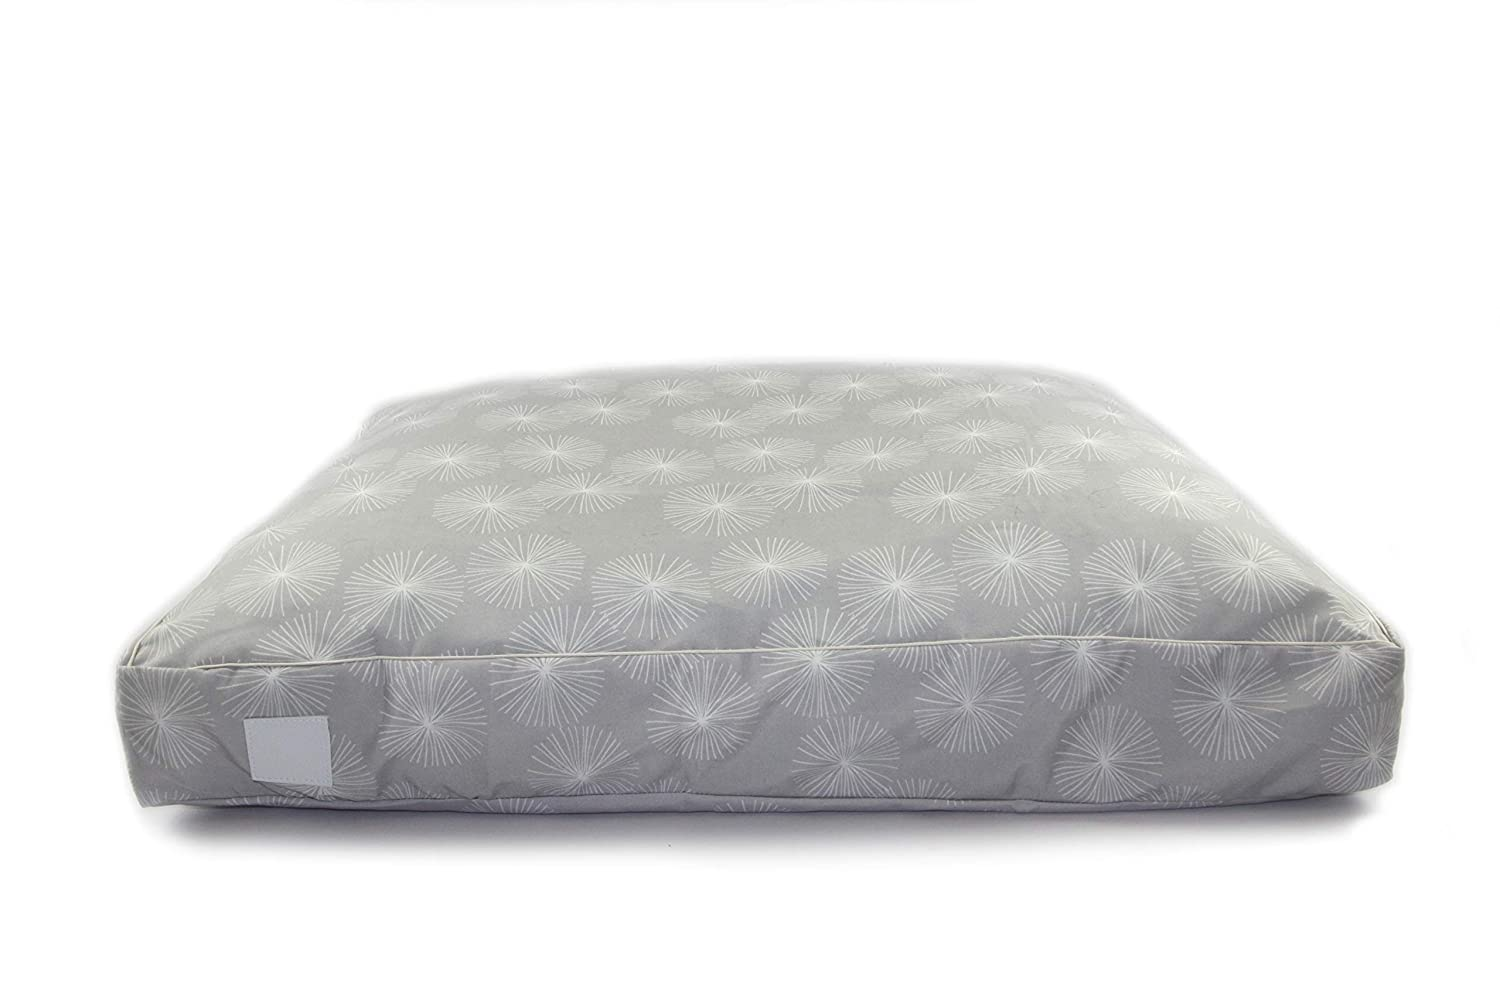 T & S Pet Products T & S Interior Floor Cushion Quilted Dandelion Grey Small